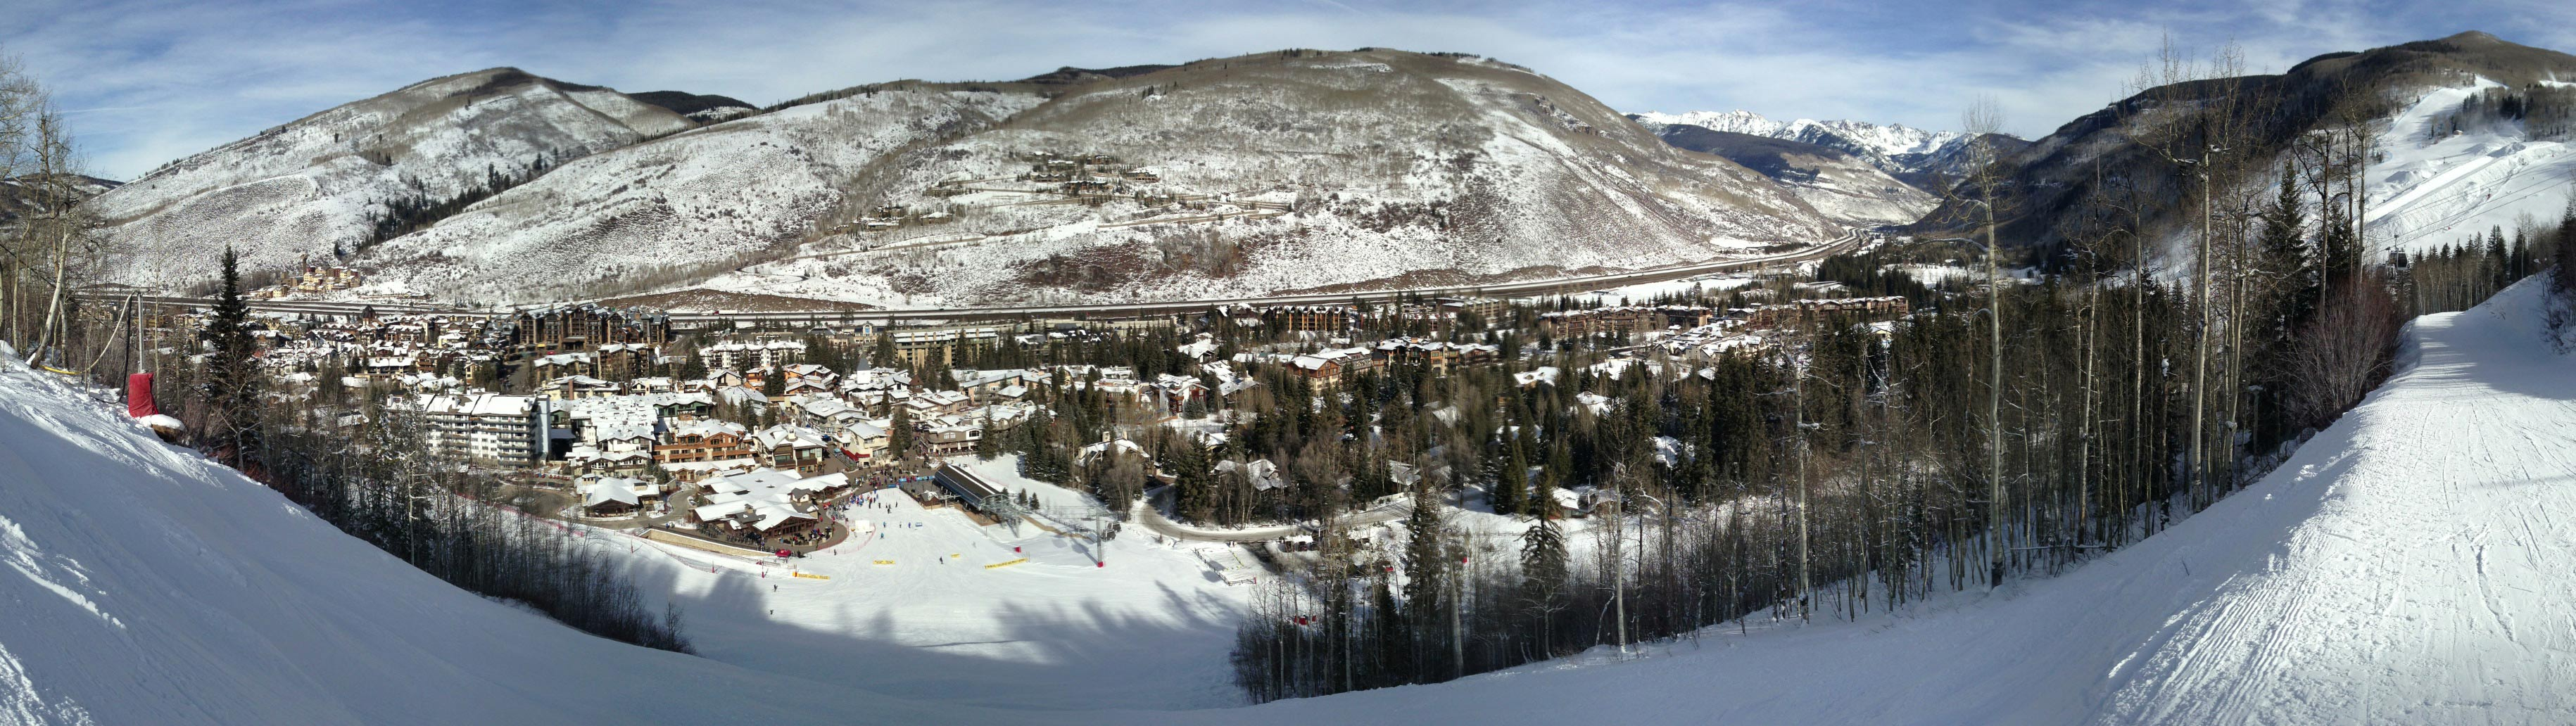 Base Vail Ski Mountain Panoramic